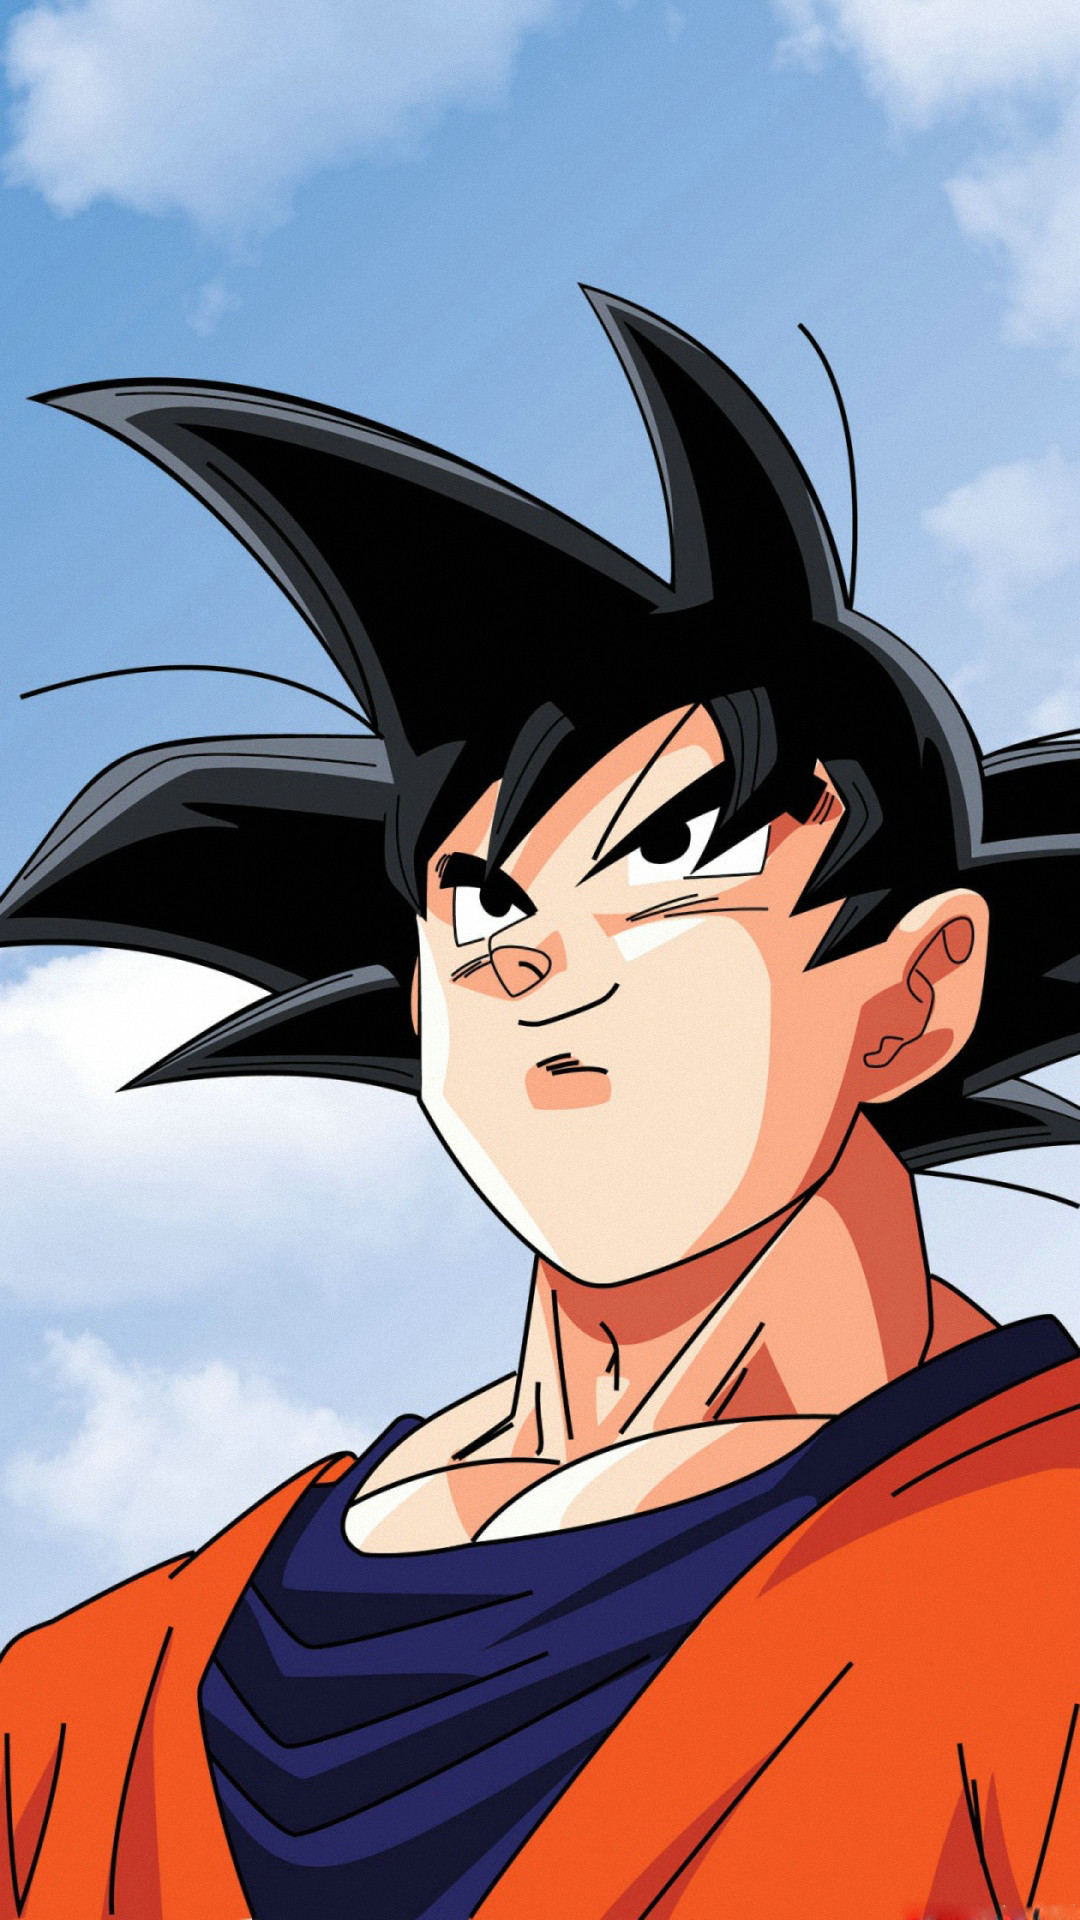 Goku Iphone Wallpaper 64 Images